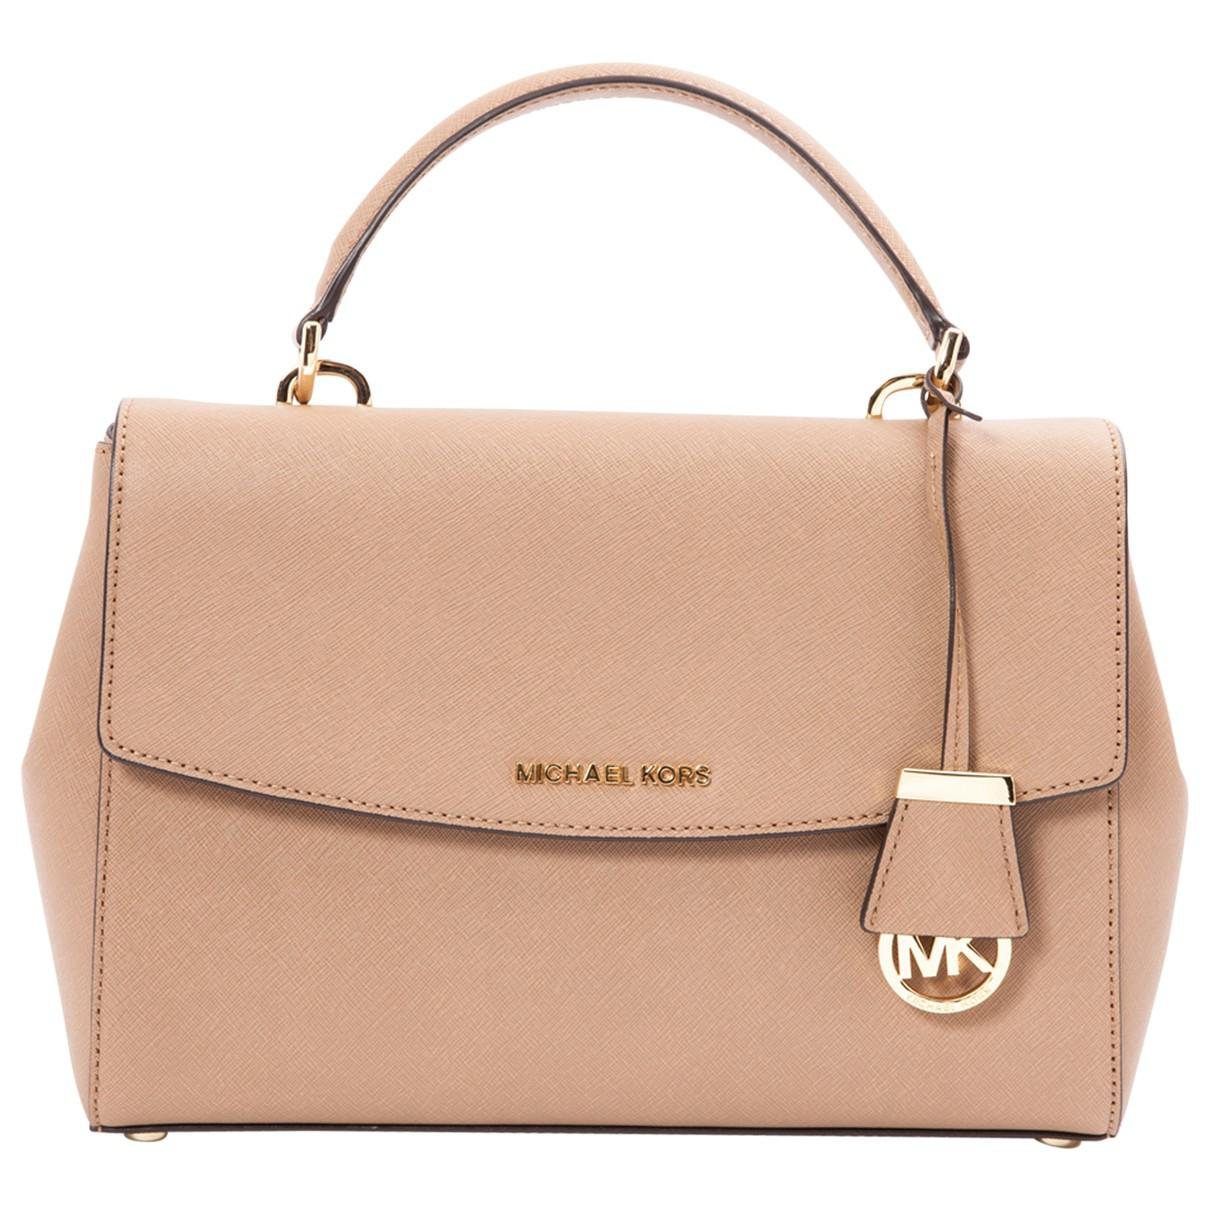 7e5db926c9fac6 Lyst - Michael Kors Pre-owned Leather Handbag in Natural